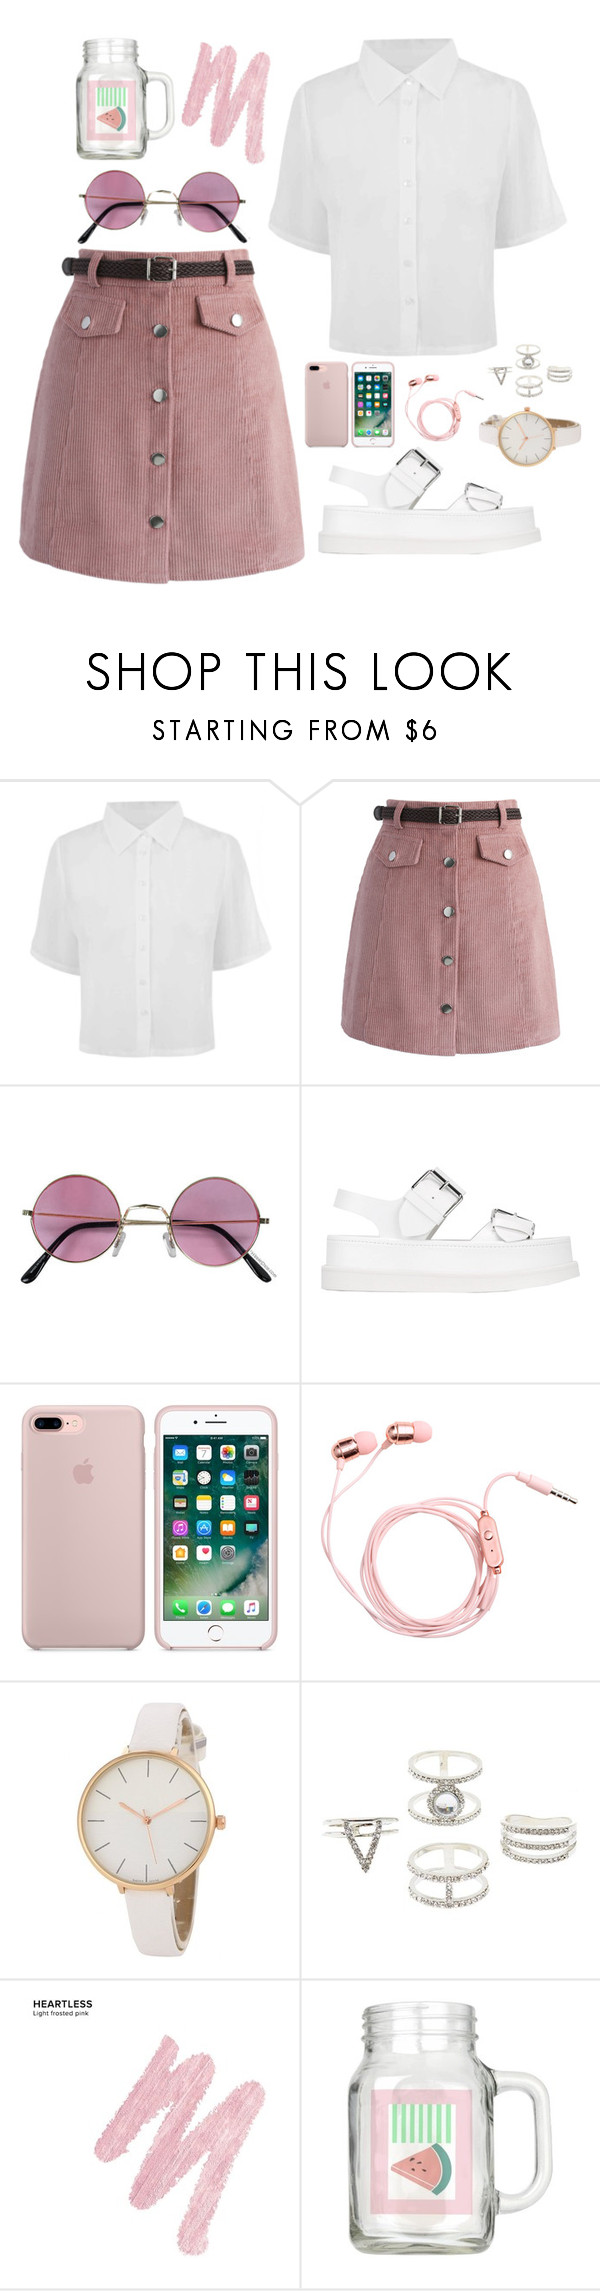 """""""Untitled #194"""" by kateshantika ❤ liked on Polyvore featuring Chicwish, STELLA McCARTNEY, Charlotte Russe and Urban Decay"""